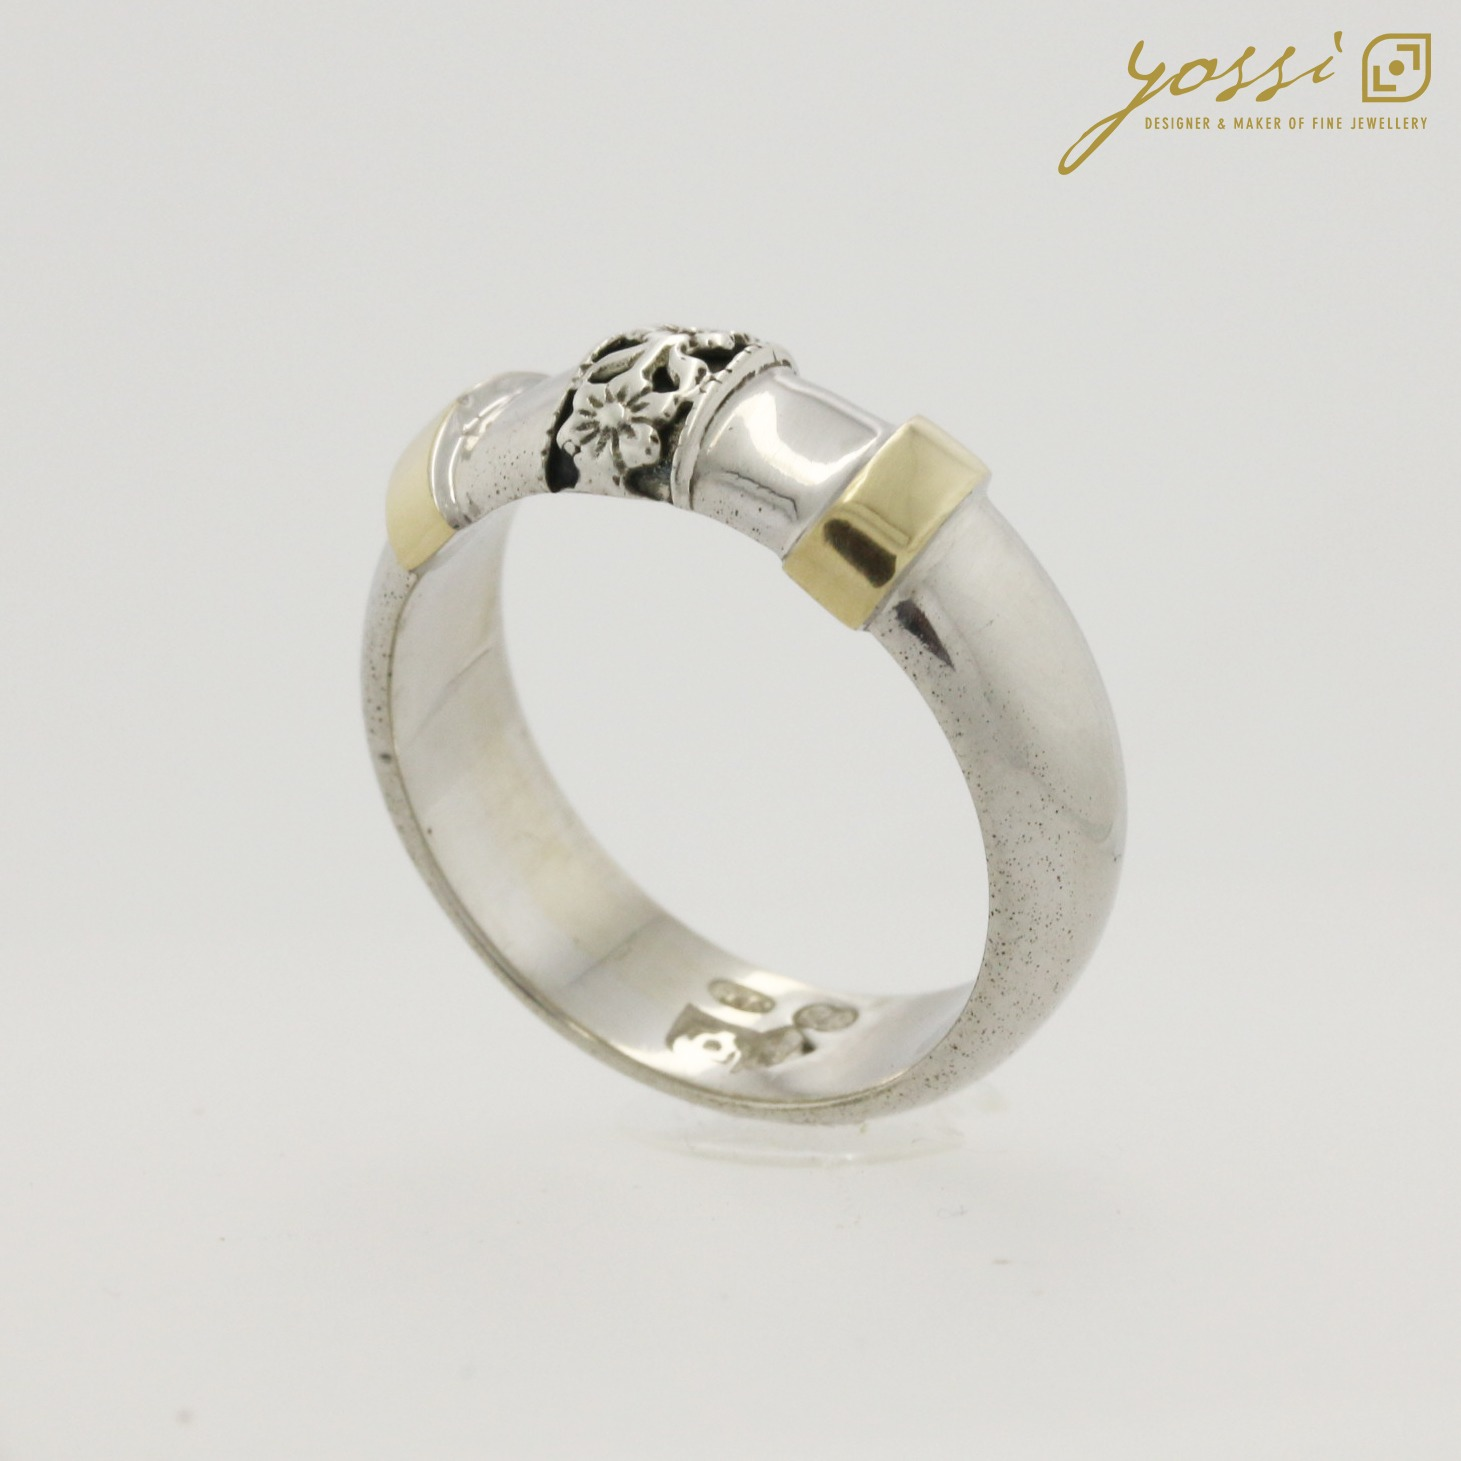 Decorative Silver & Gold Ring 5